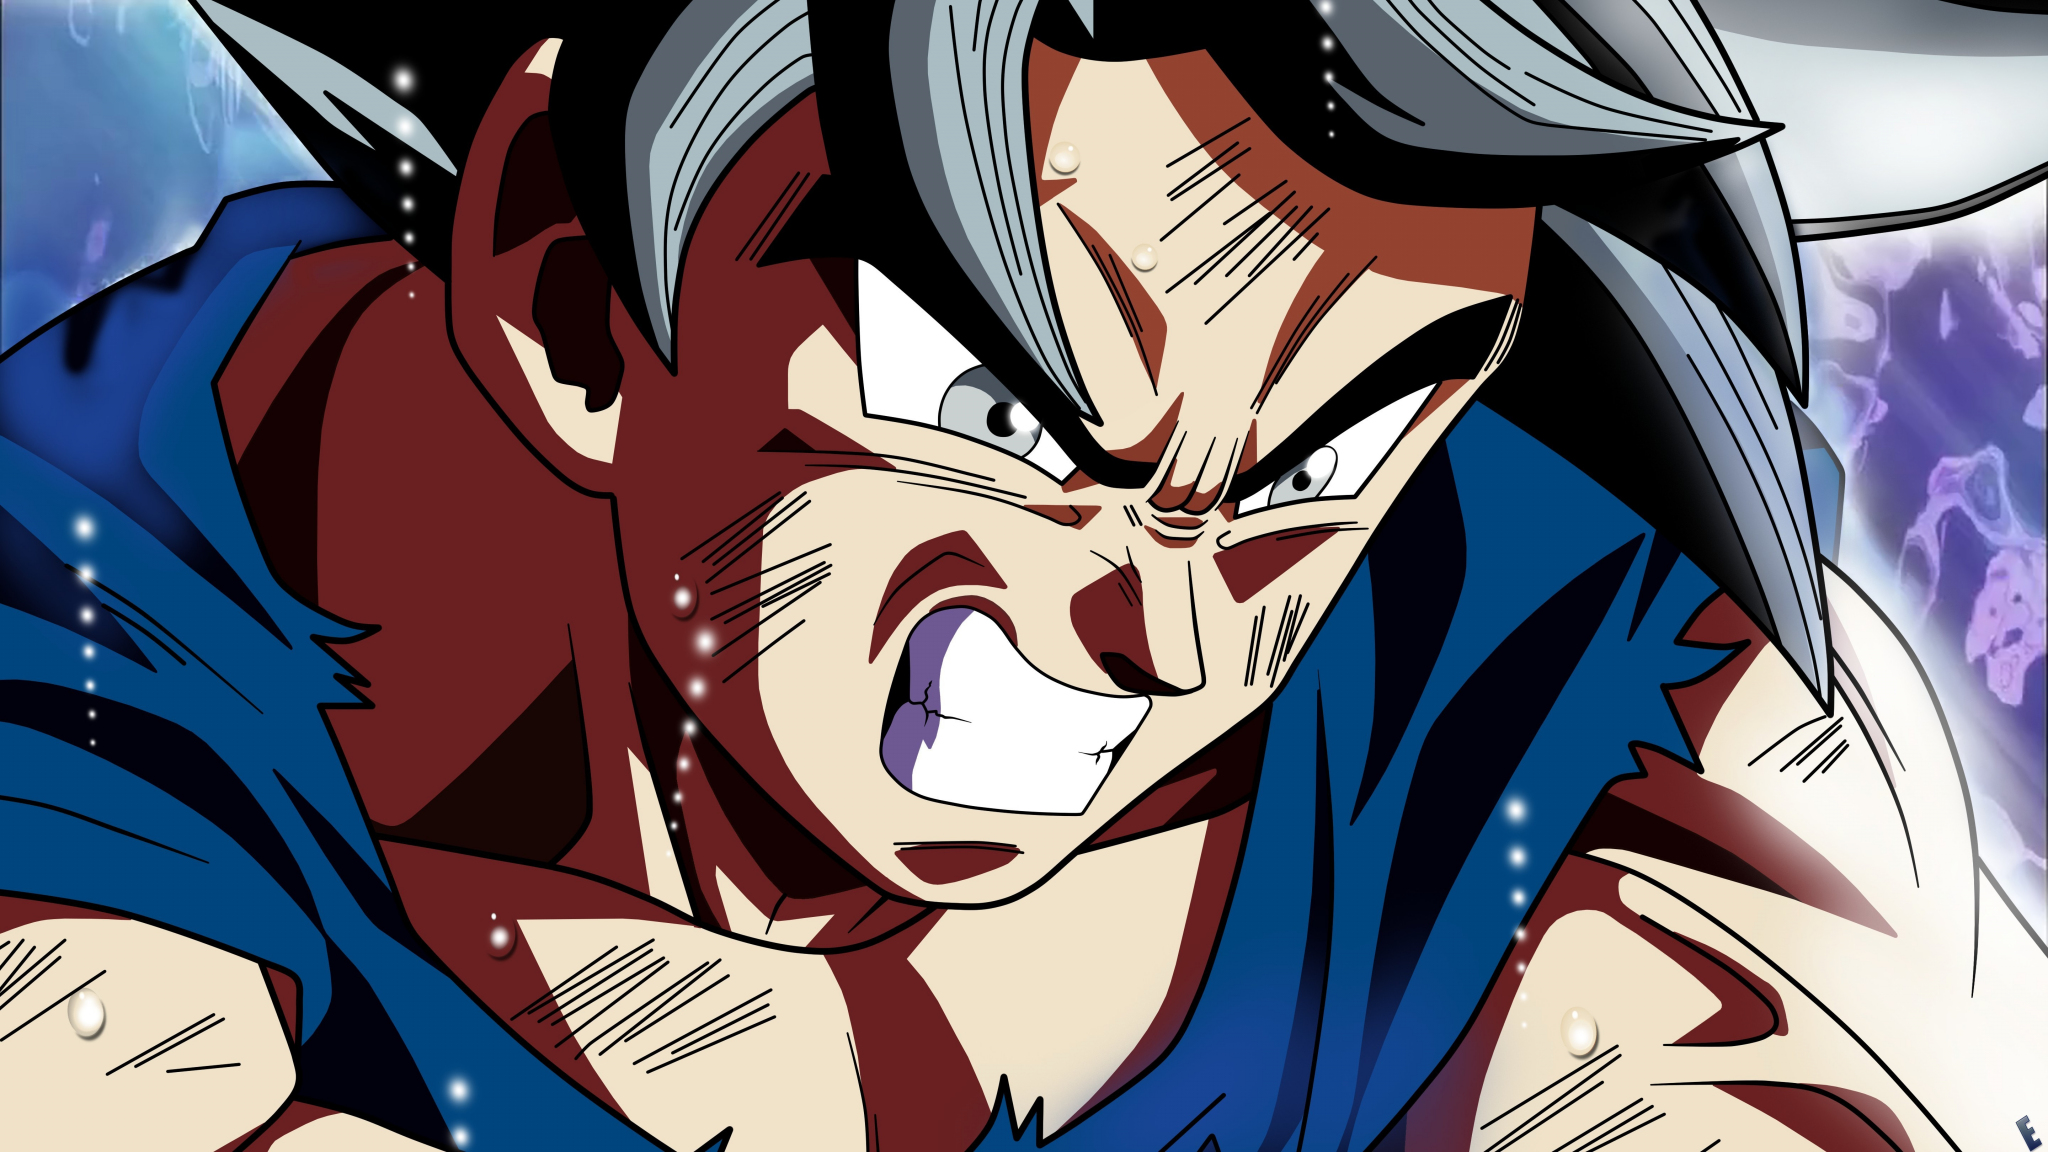 Wallpaper 4k Samsung Galaxy S8 Girls Download 2048x1152 Wallpaper Goku Angry Face Anime